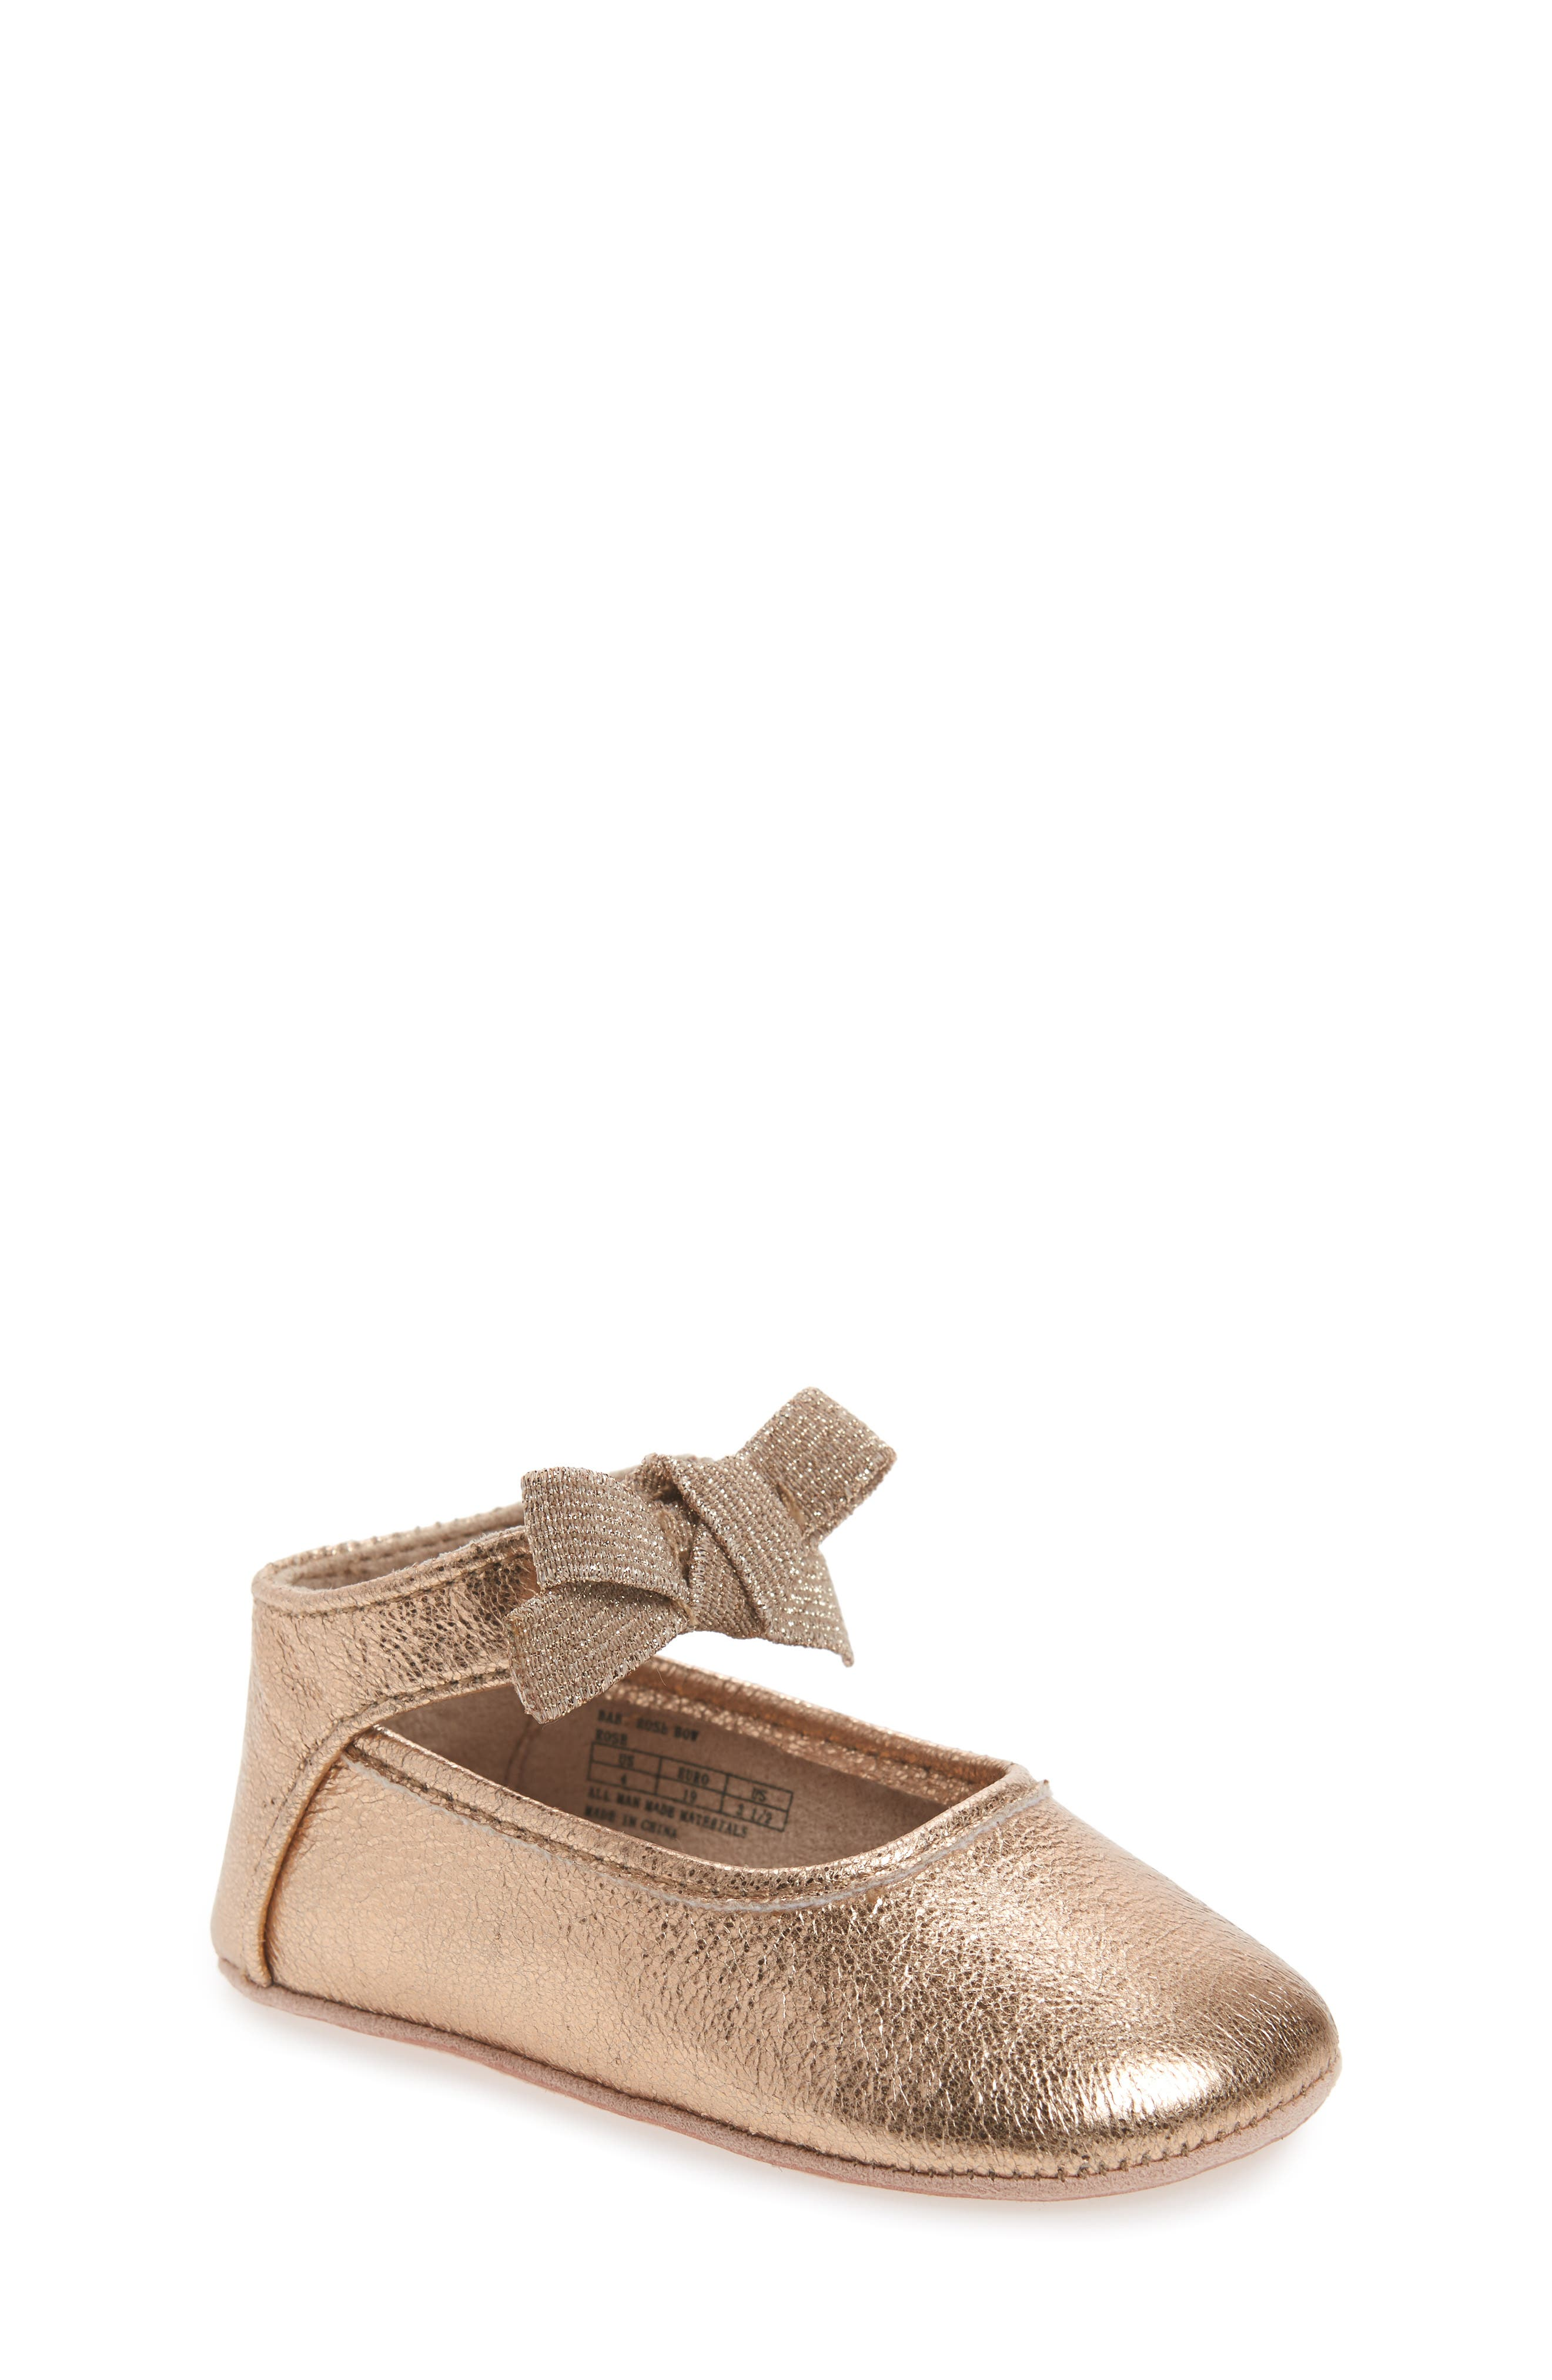 KENNETH COLE NEW YORK Rose Bow Metallic Ballet Flat, Main, color, ROSE